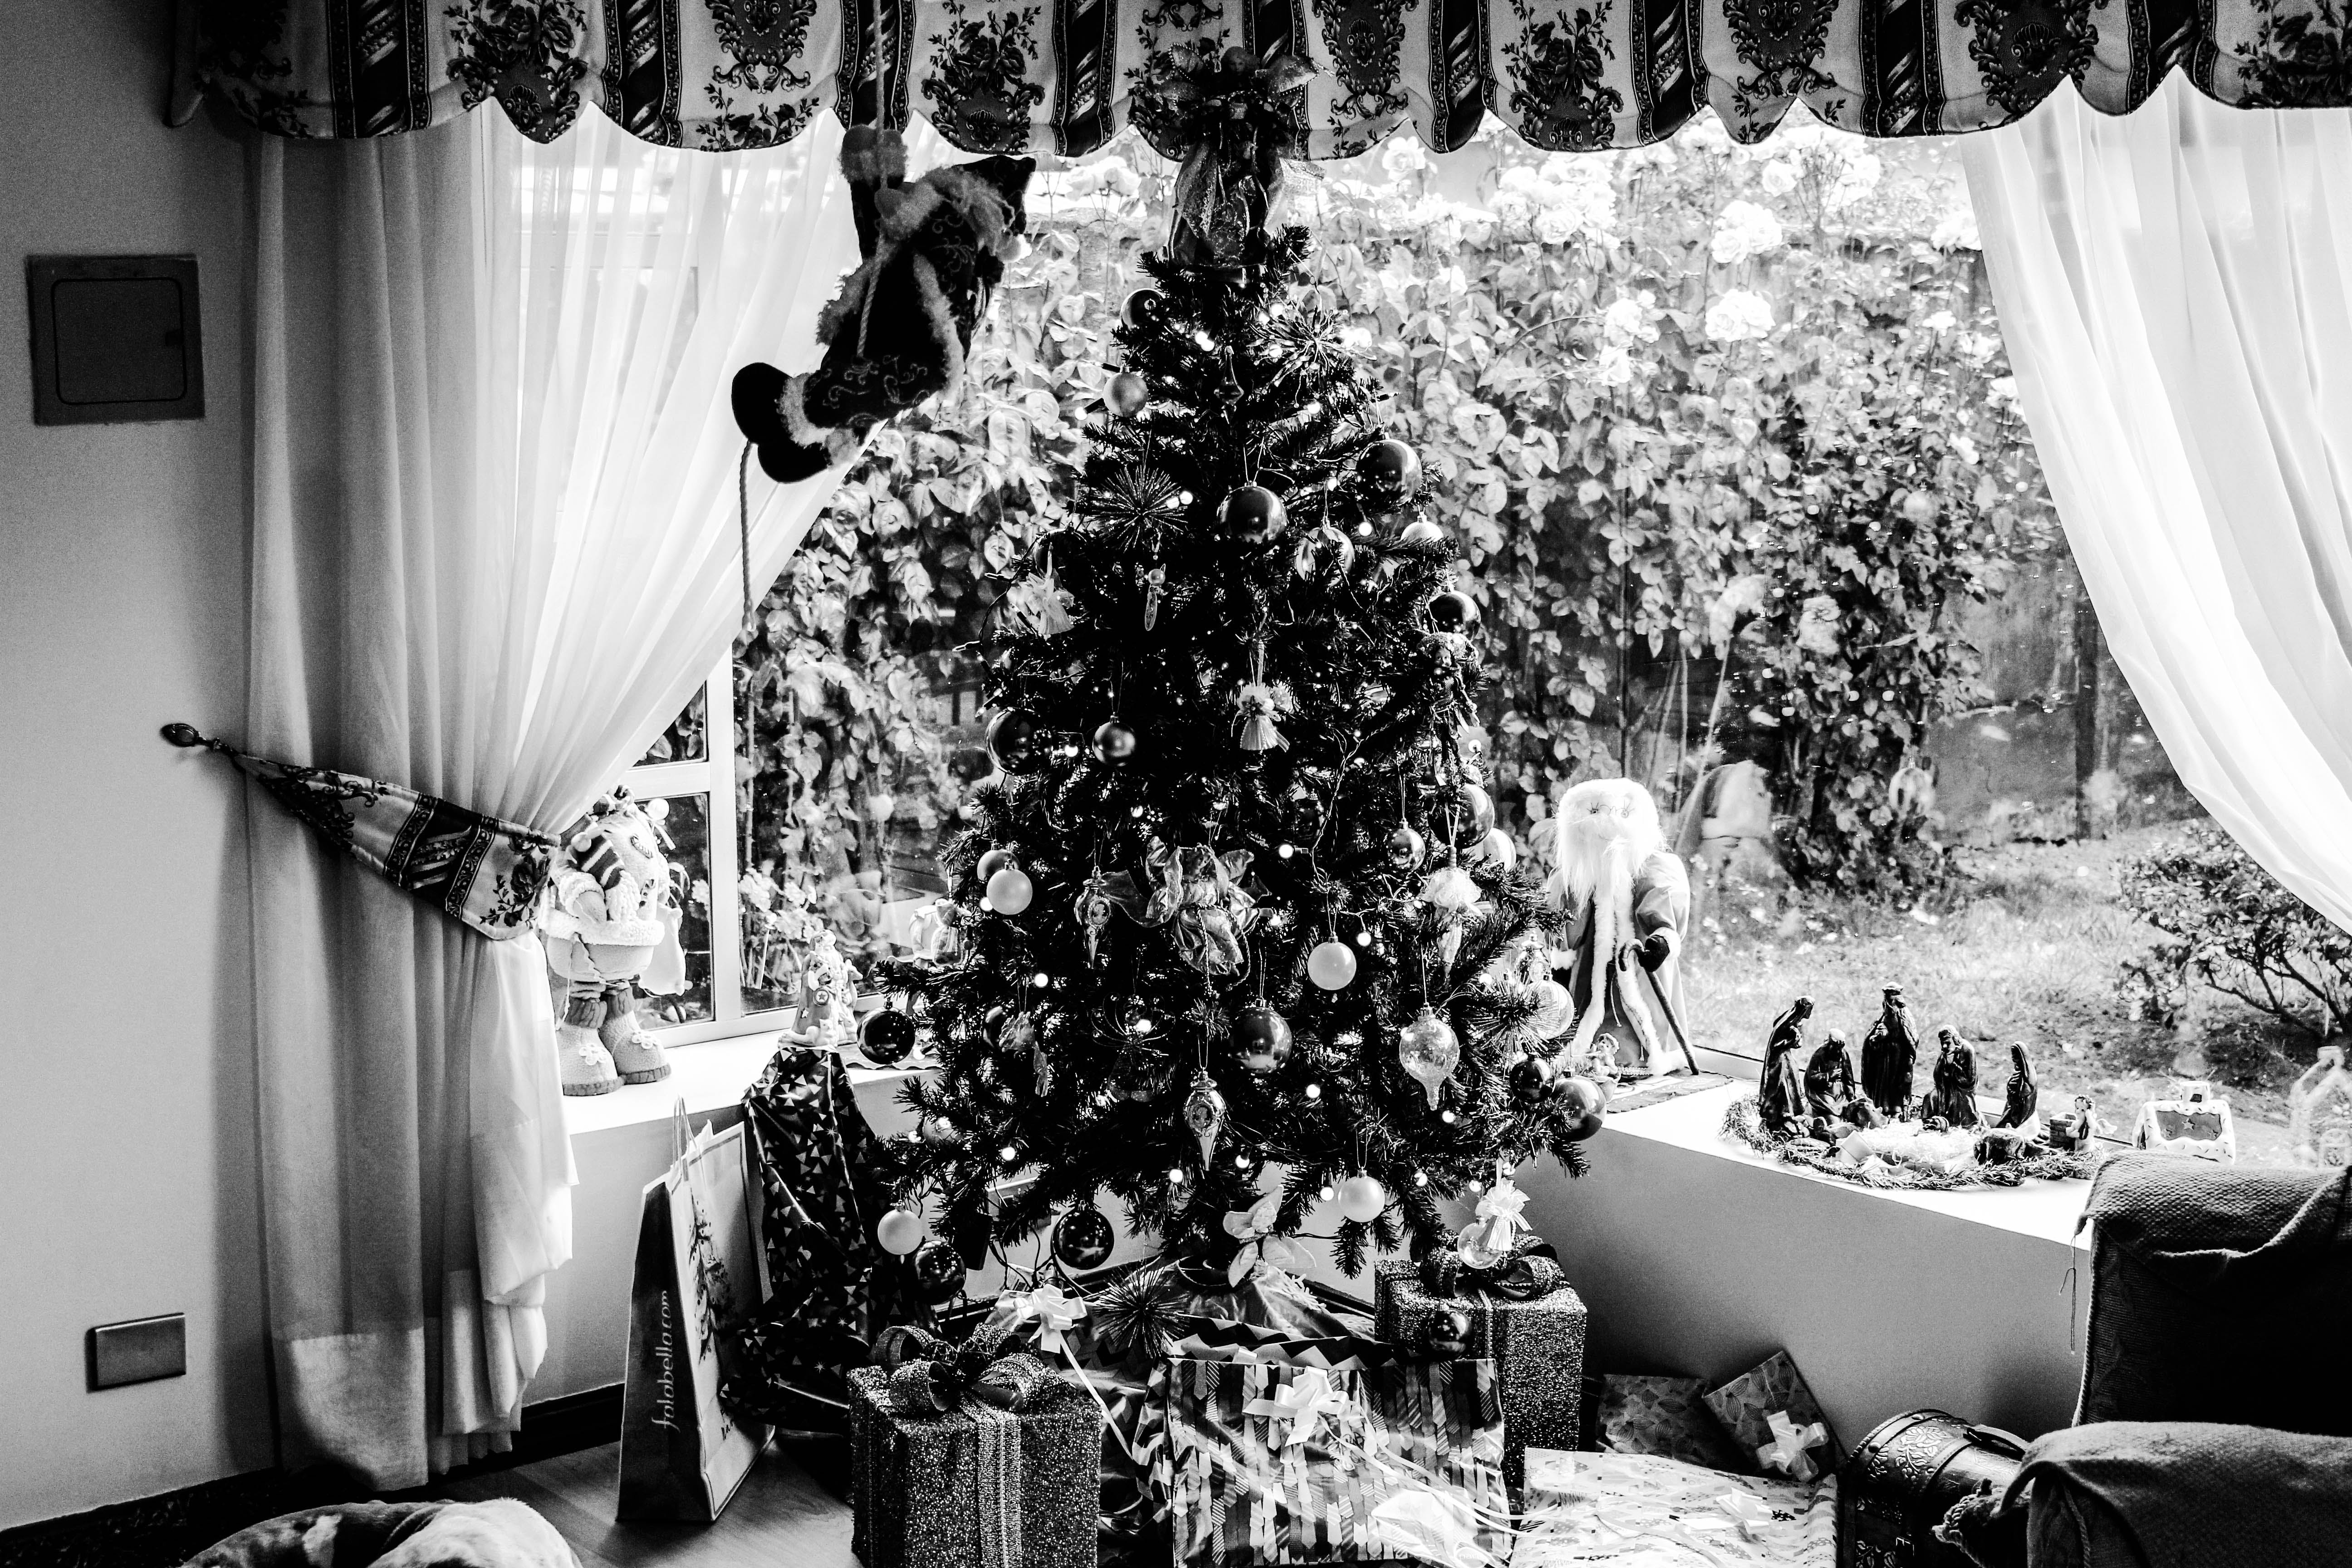 Grayscale Photo of Christmas